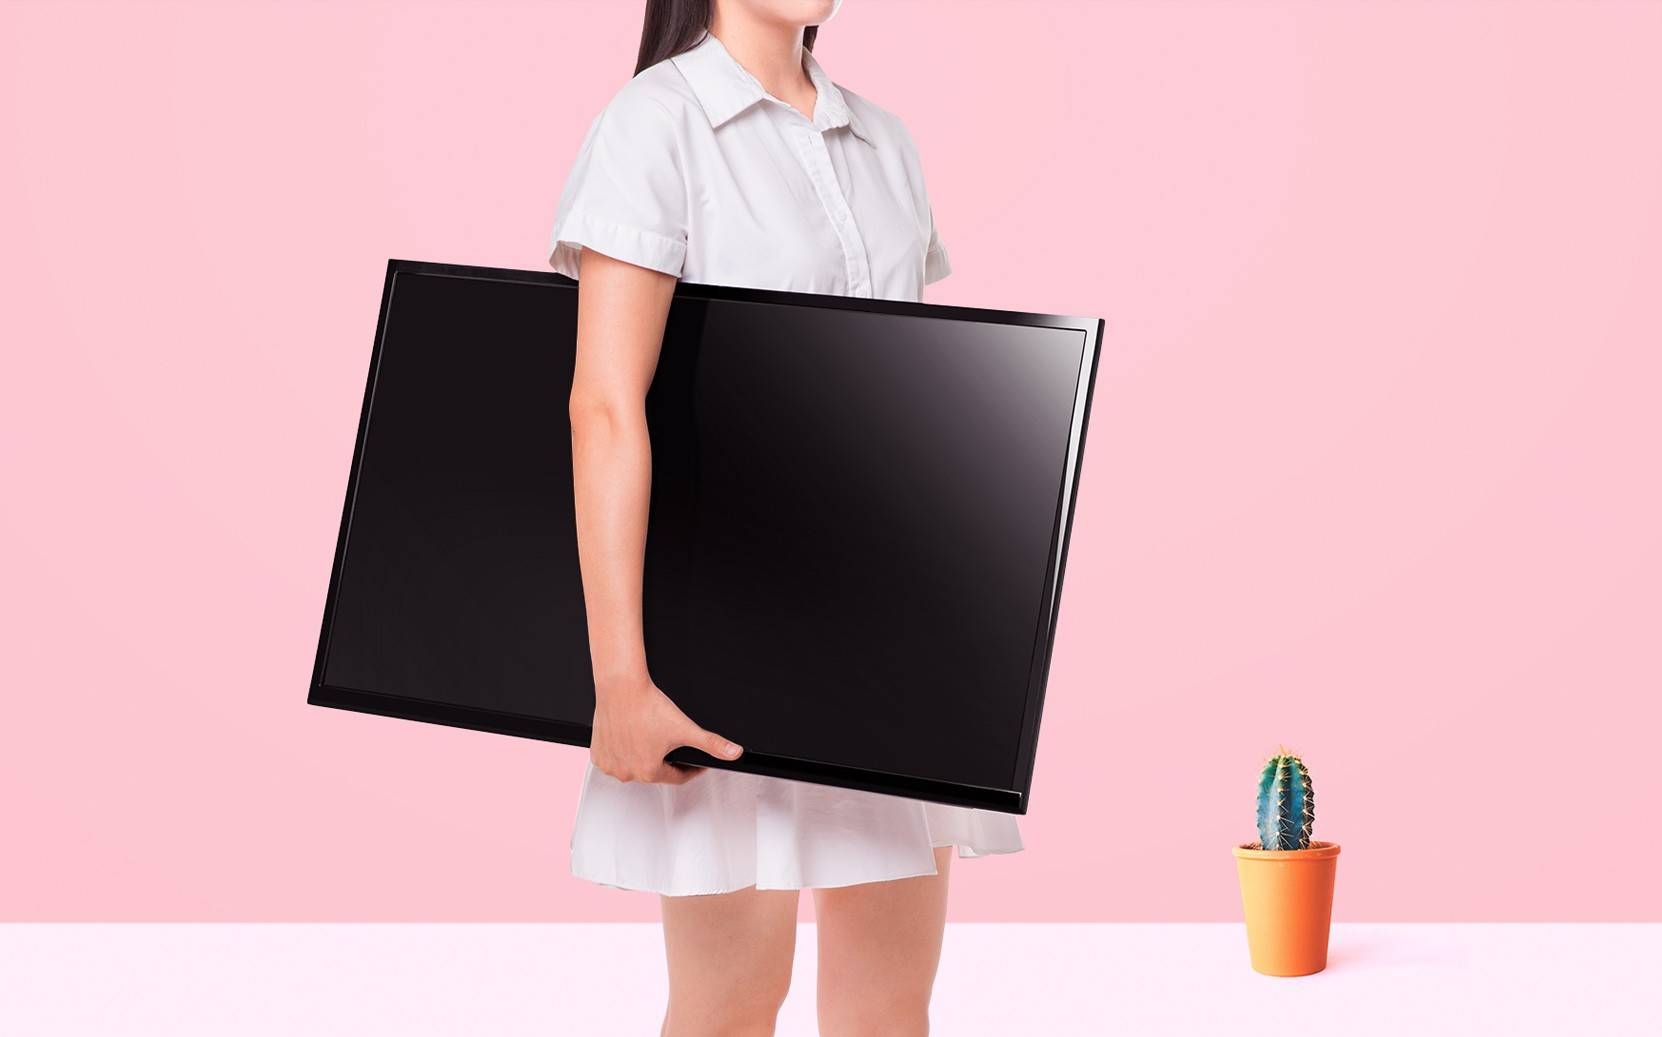 xiaomi 4A a tv you can carry with you when moving to another place